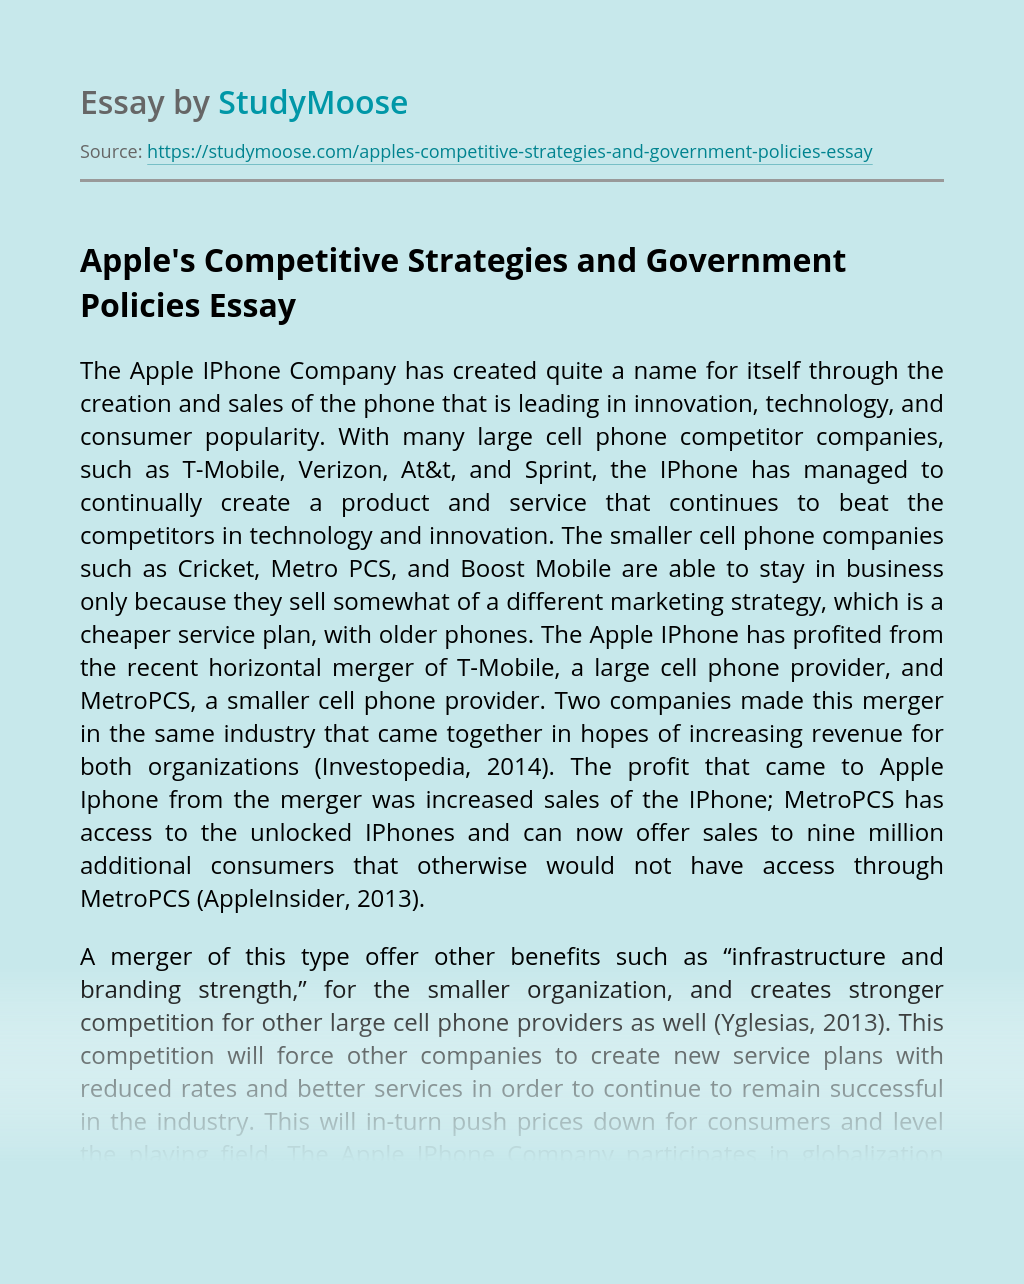 Apple's Competitive Strategies and Government Policies